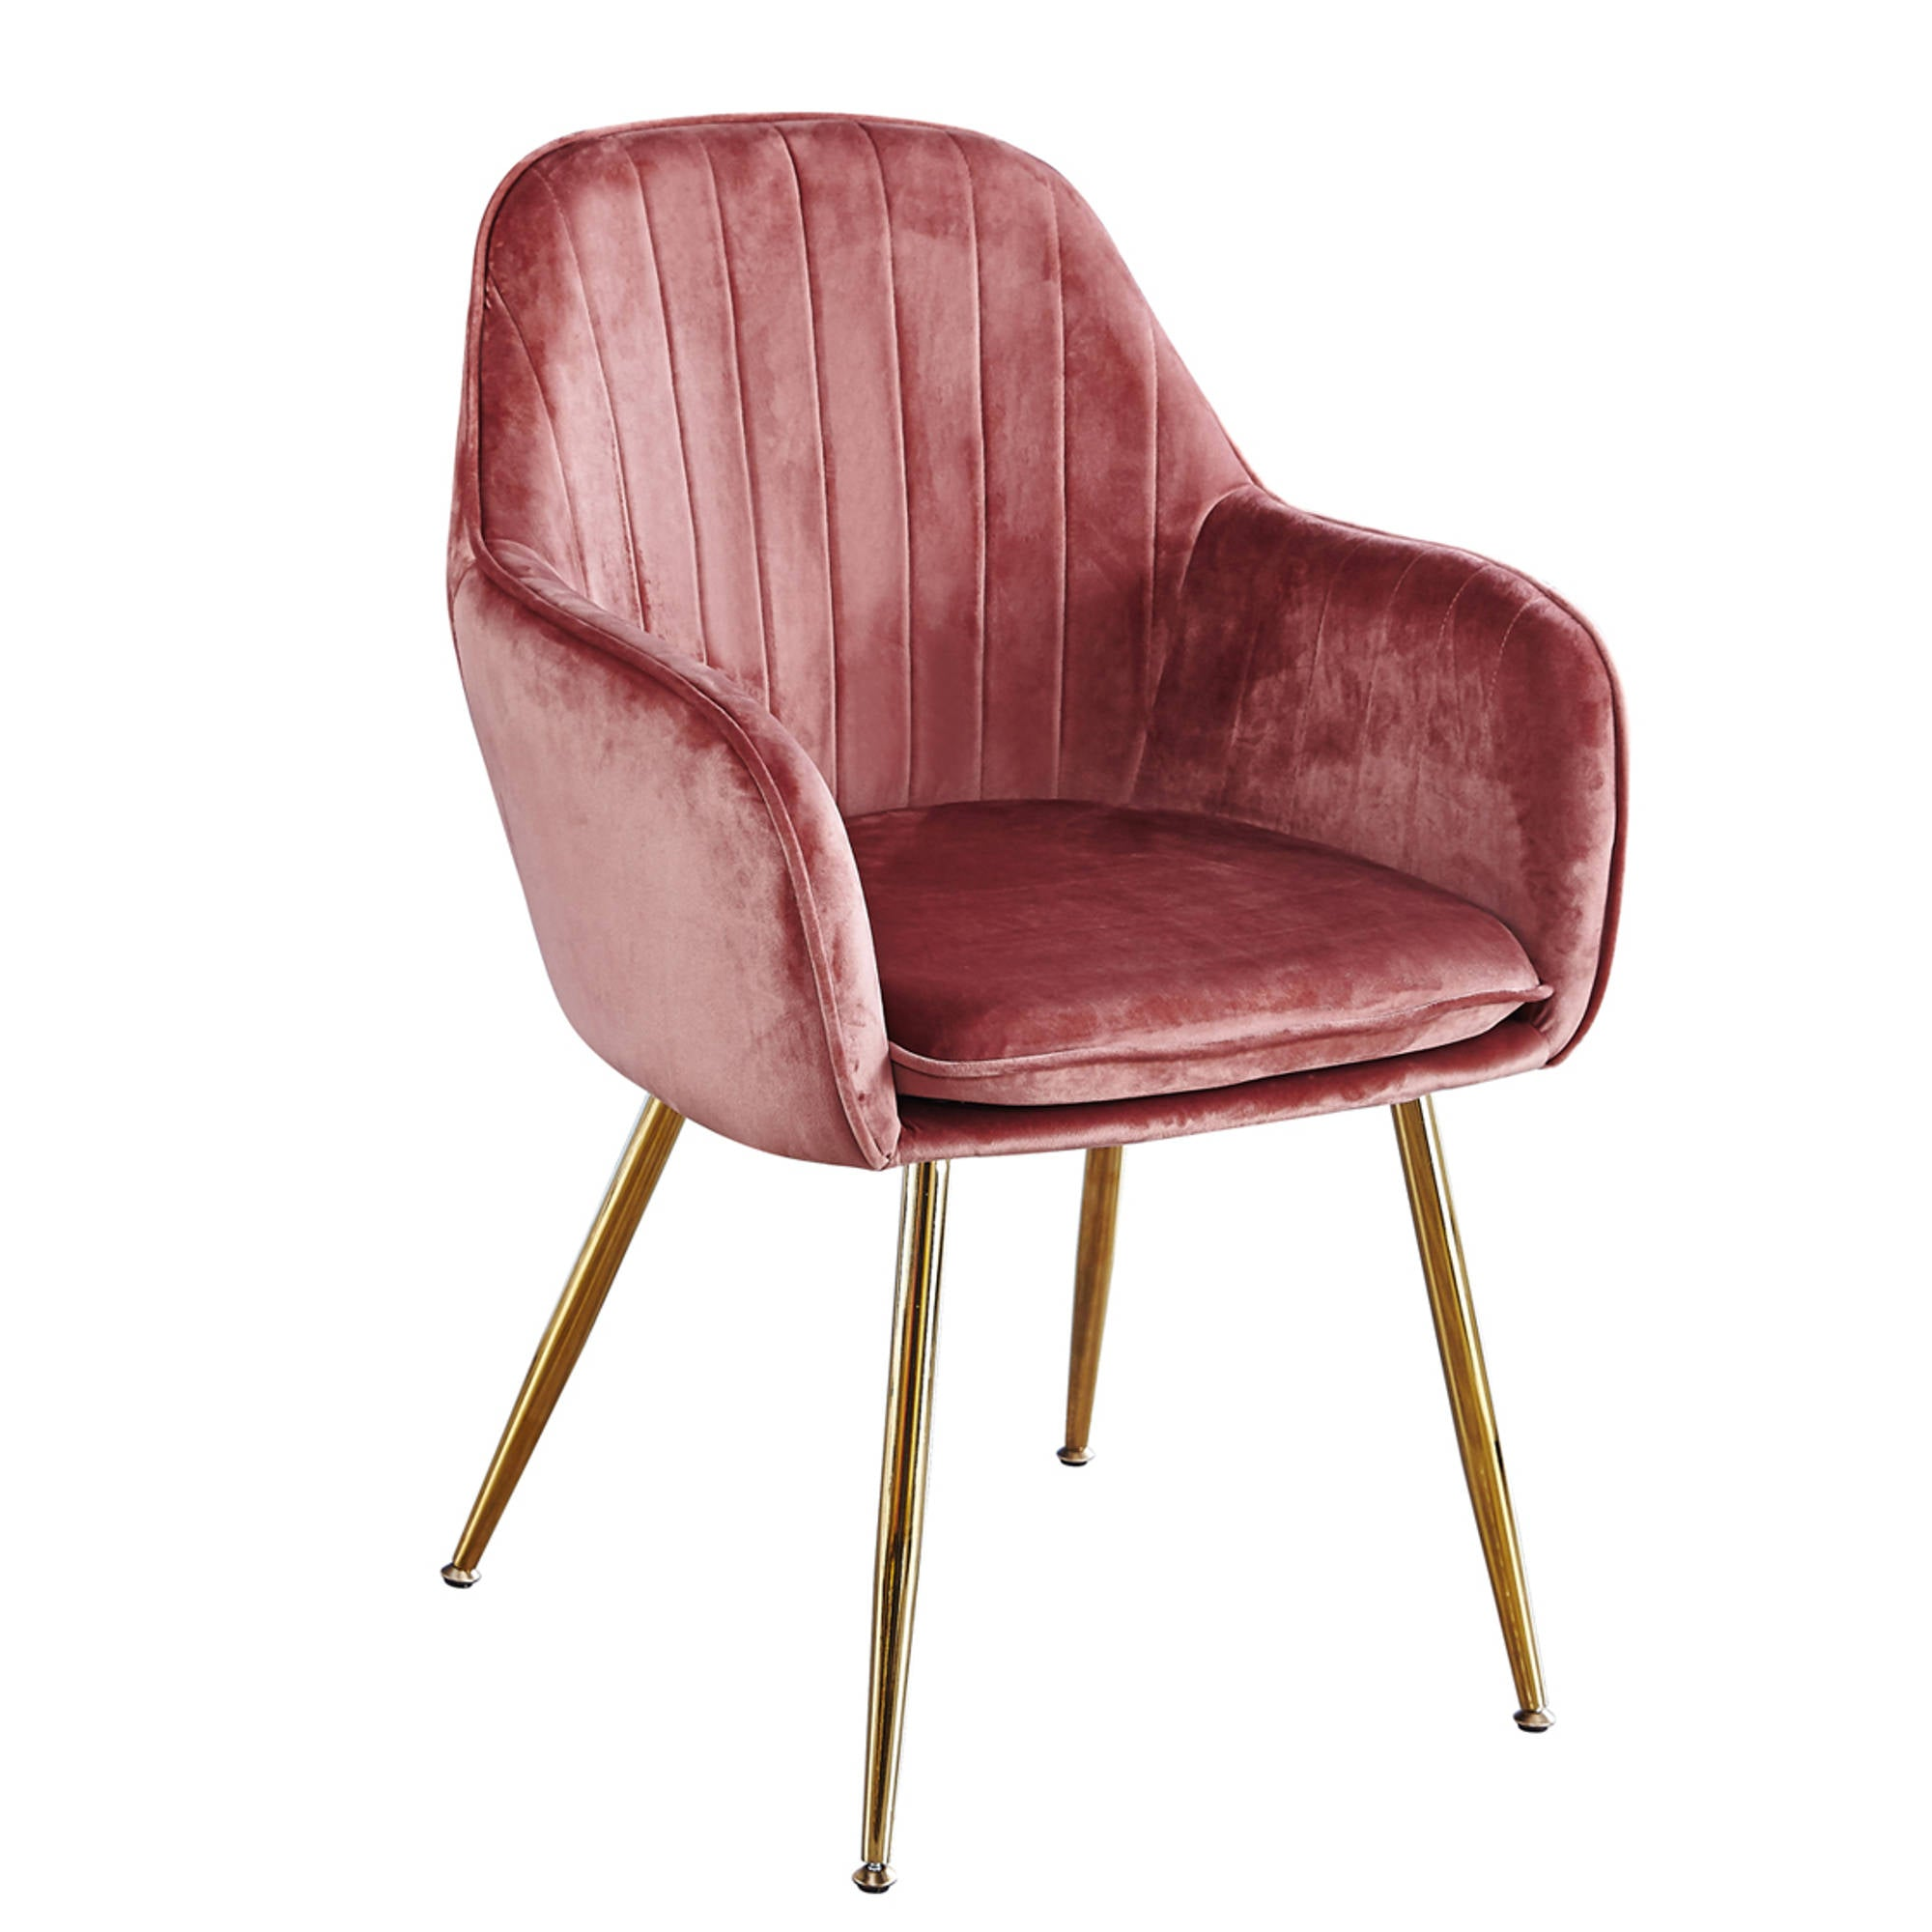 Lares Chair in Vintage Pink